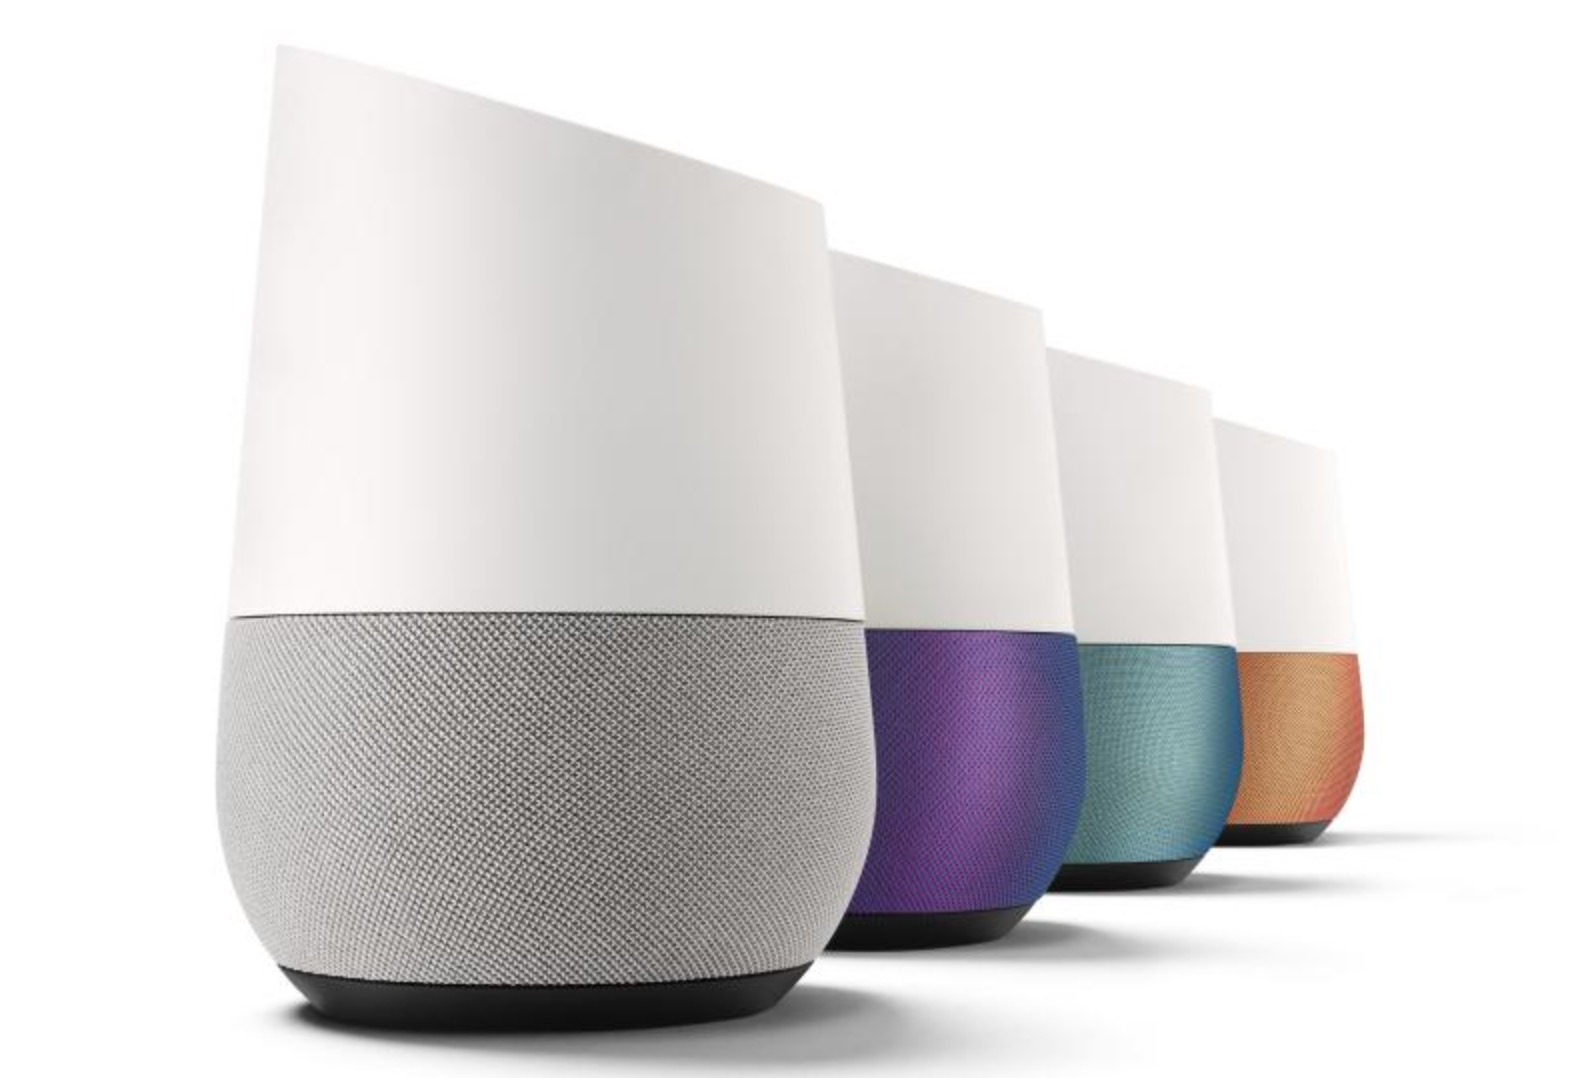 You can now set location-based reminders from Google Home